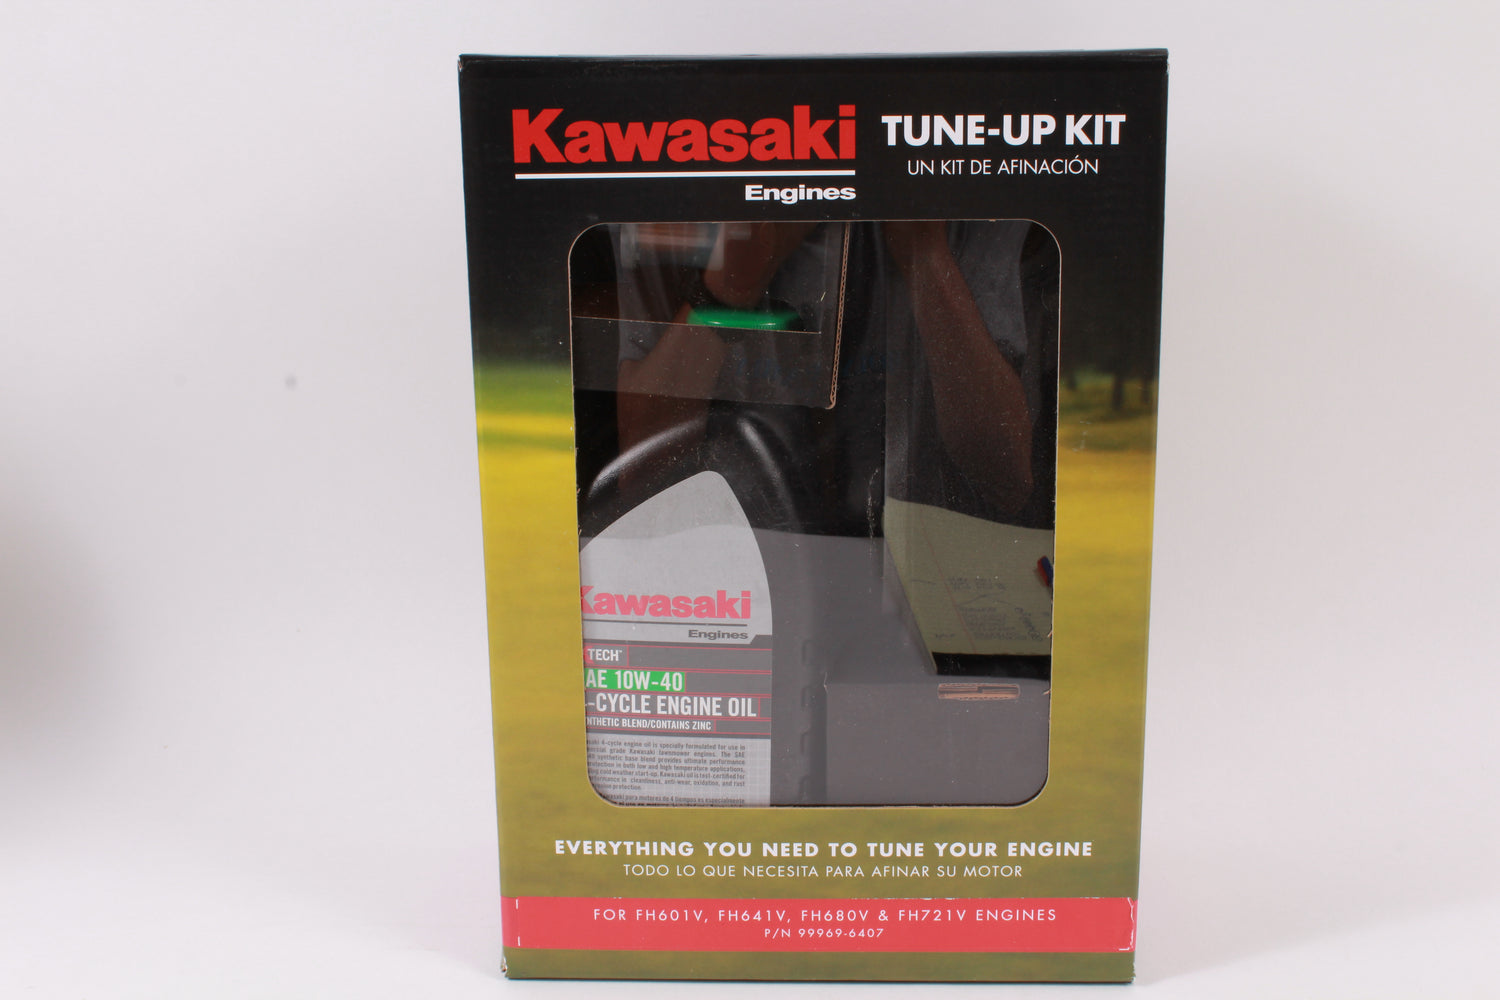 Genuine Kawasaki 99969-6407 Tune Up Kit Fits FH601V FH641V FH680V FH721V OEM